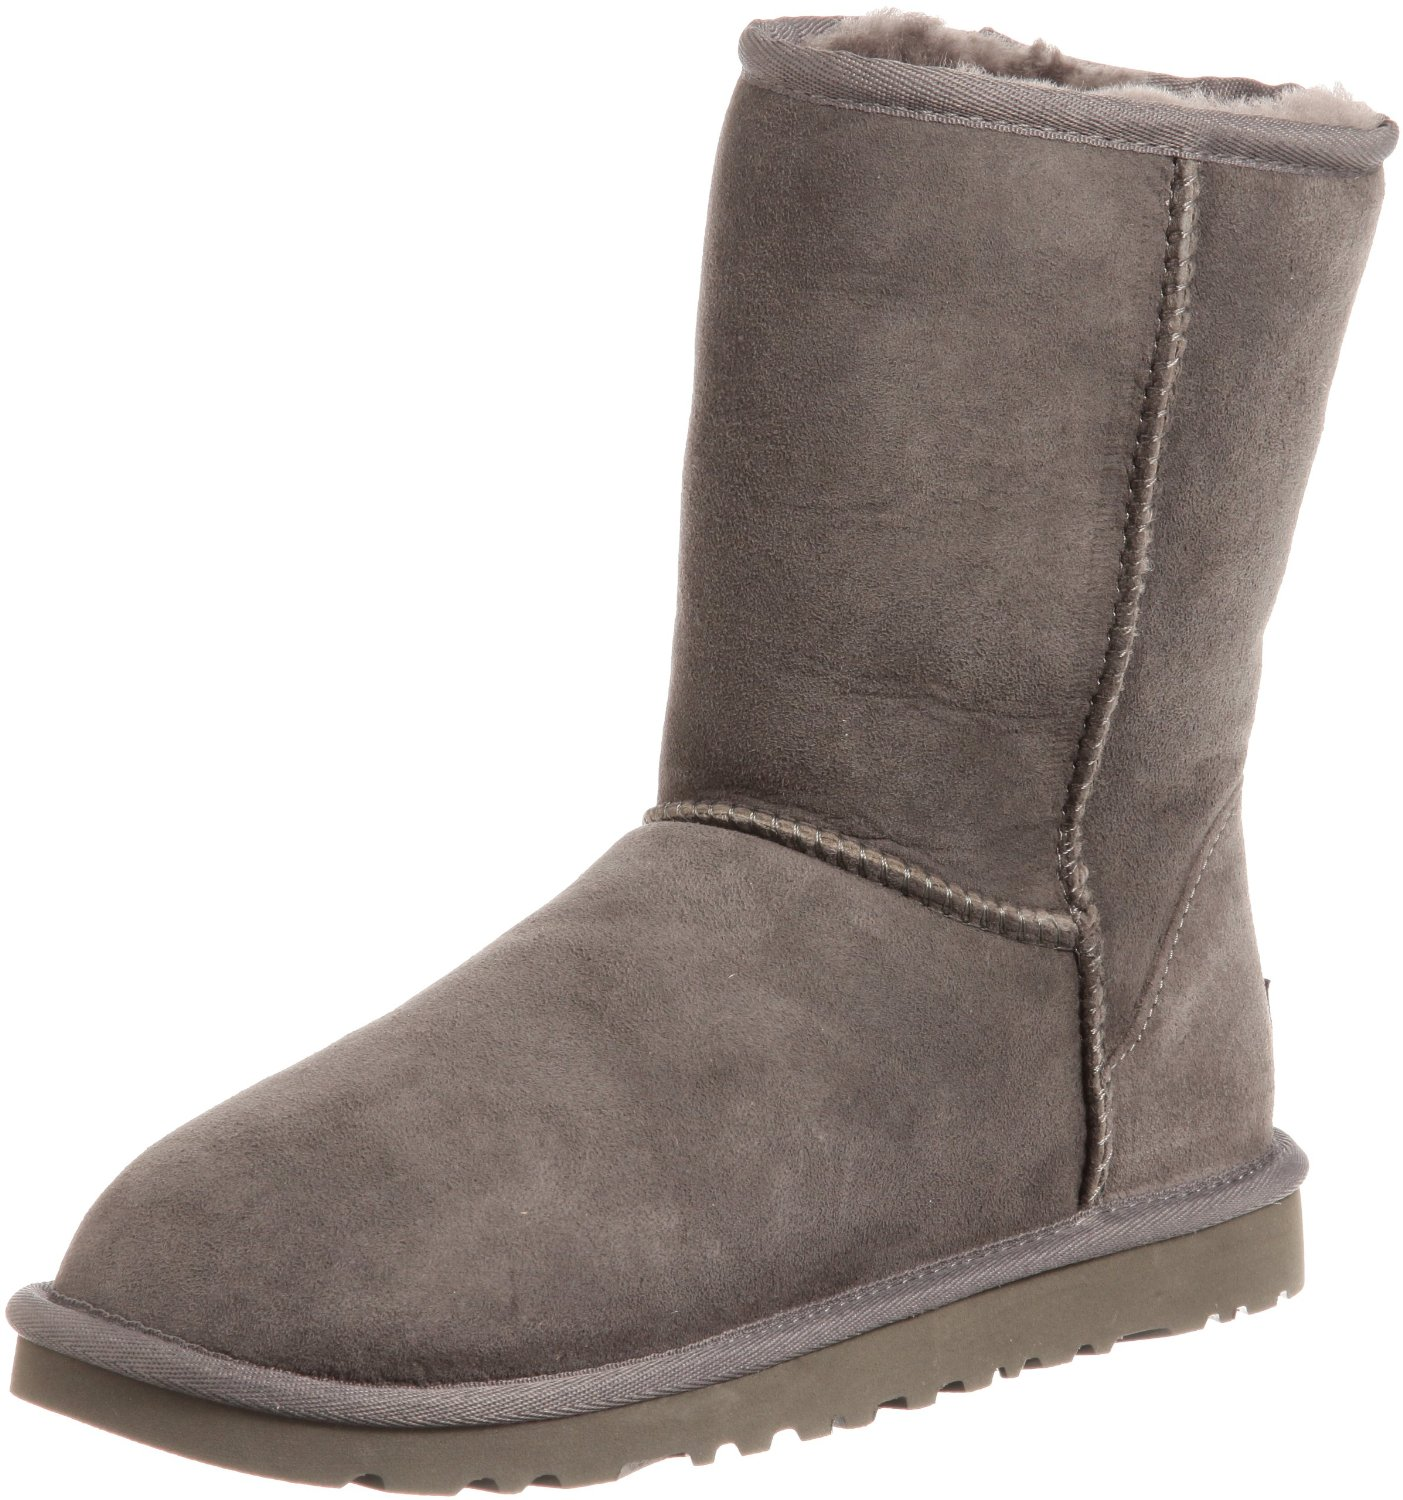 ugg classic new ankle boots shoes grey ebay